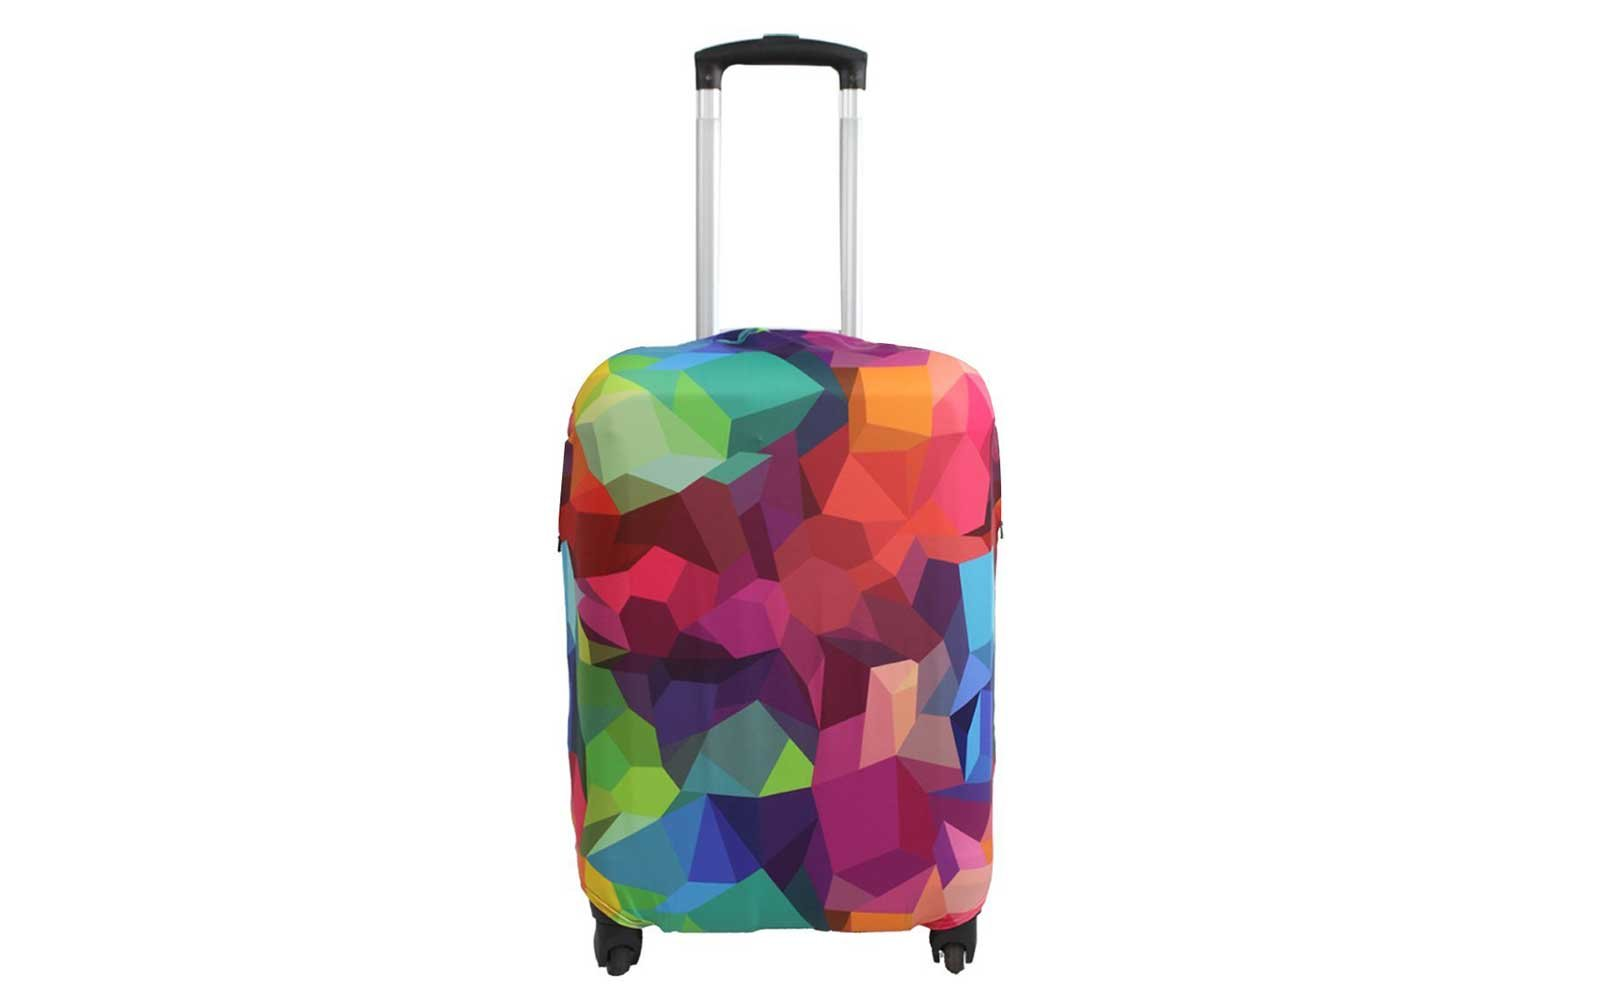 Colorful Luggage Covers